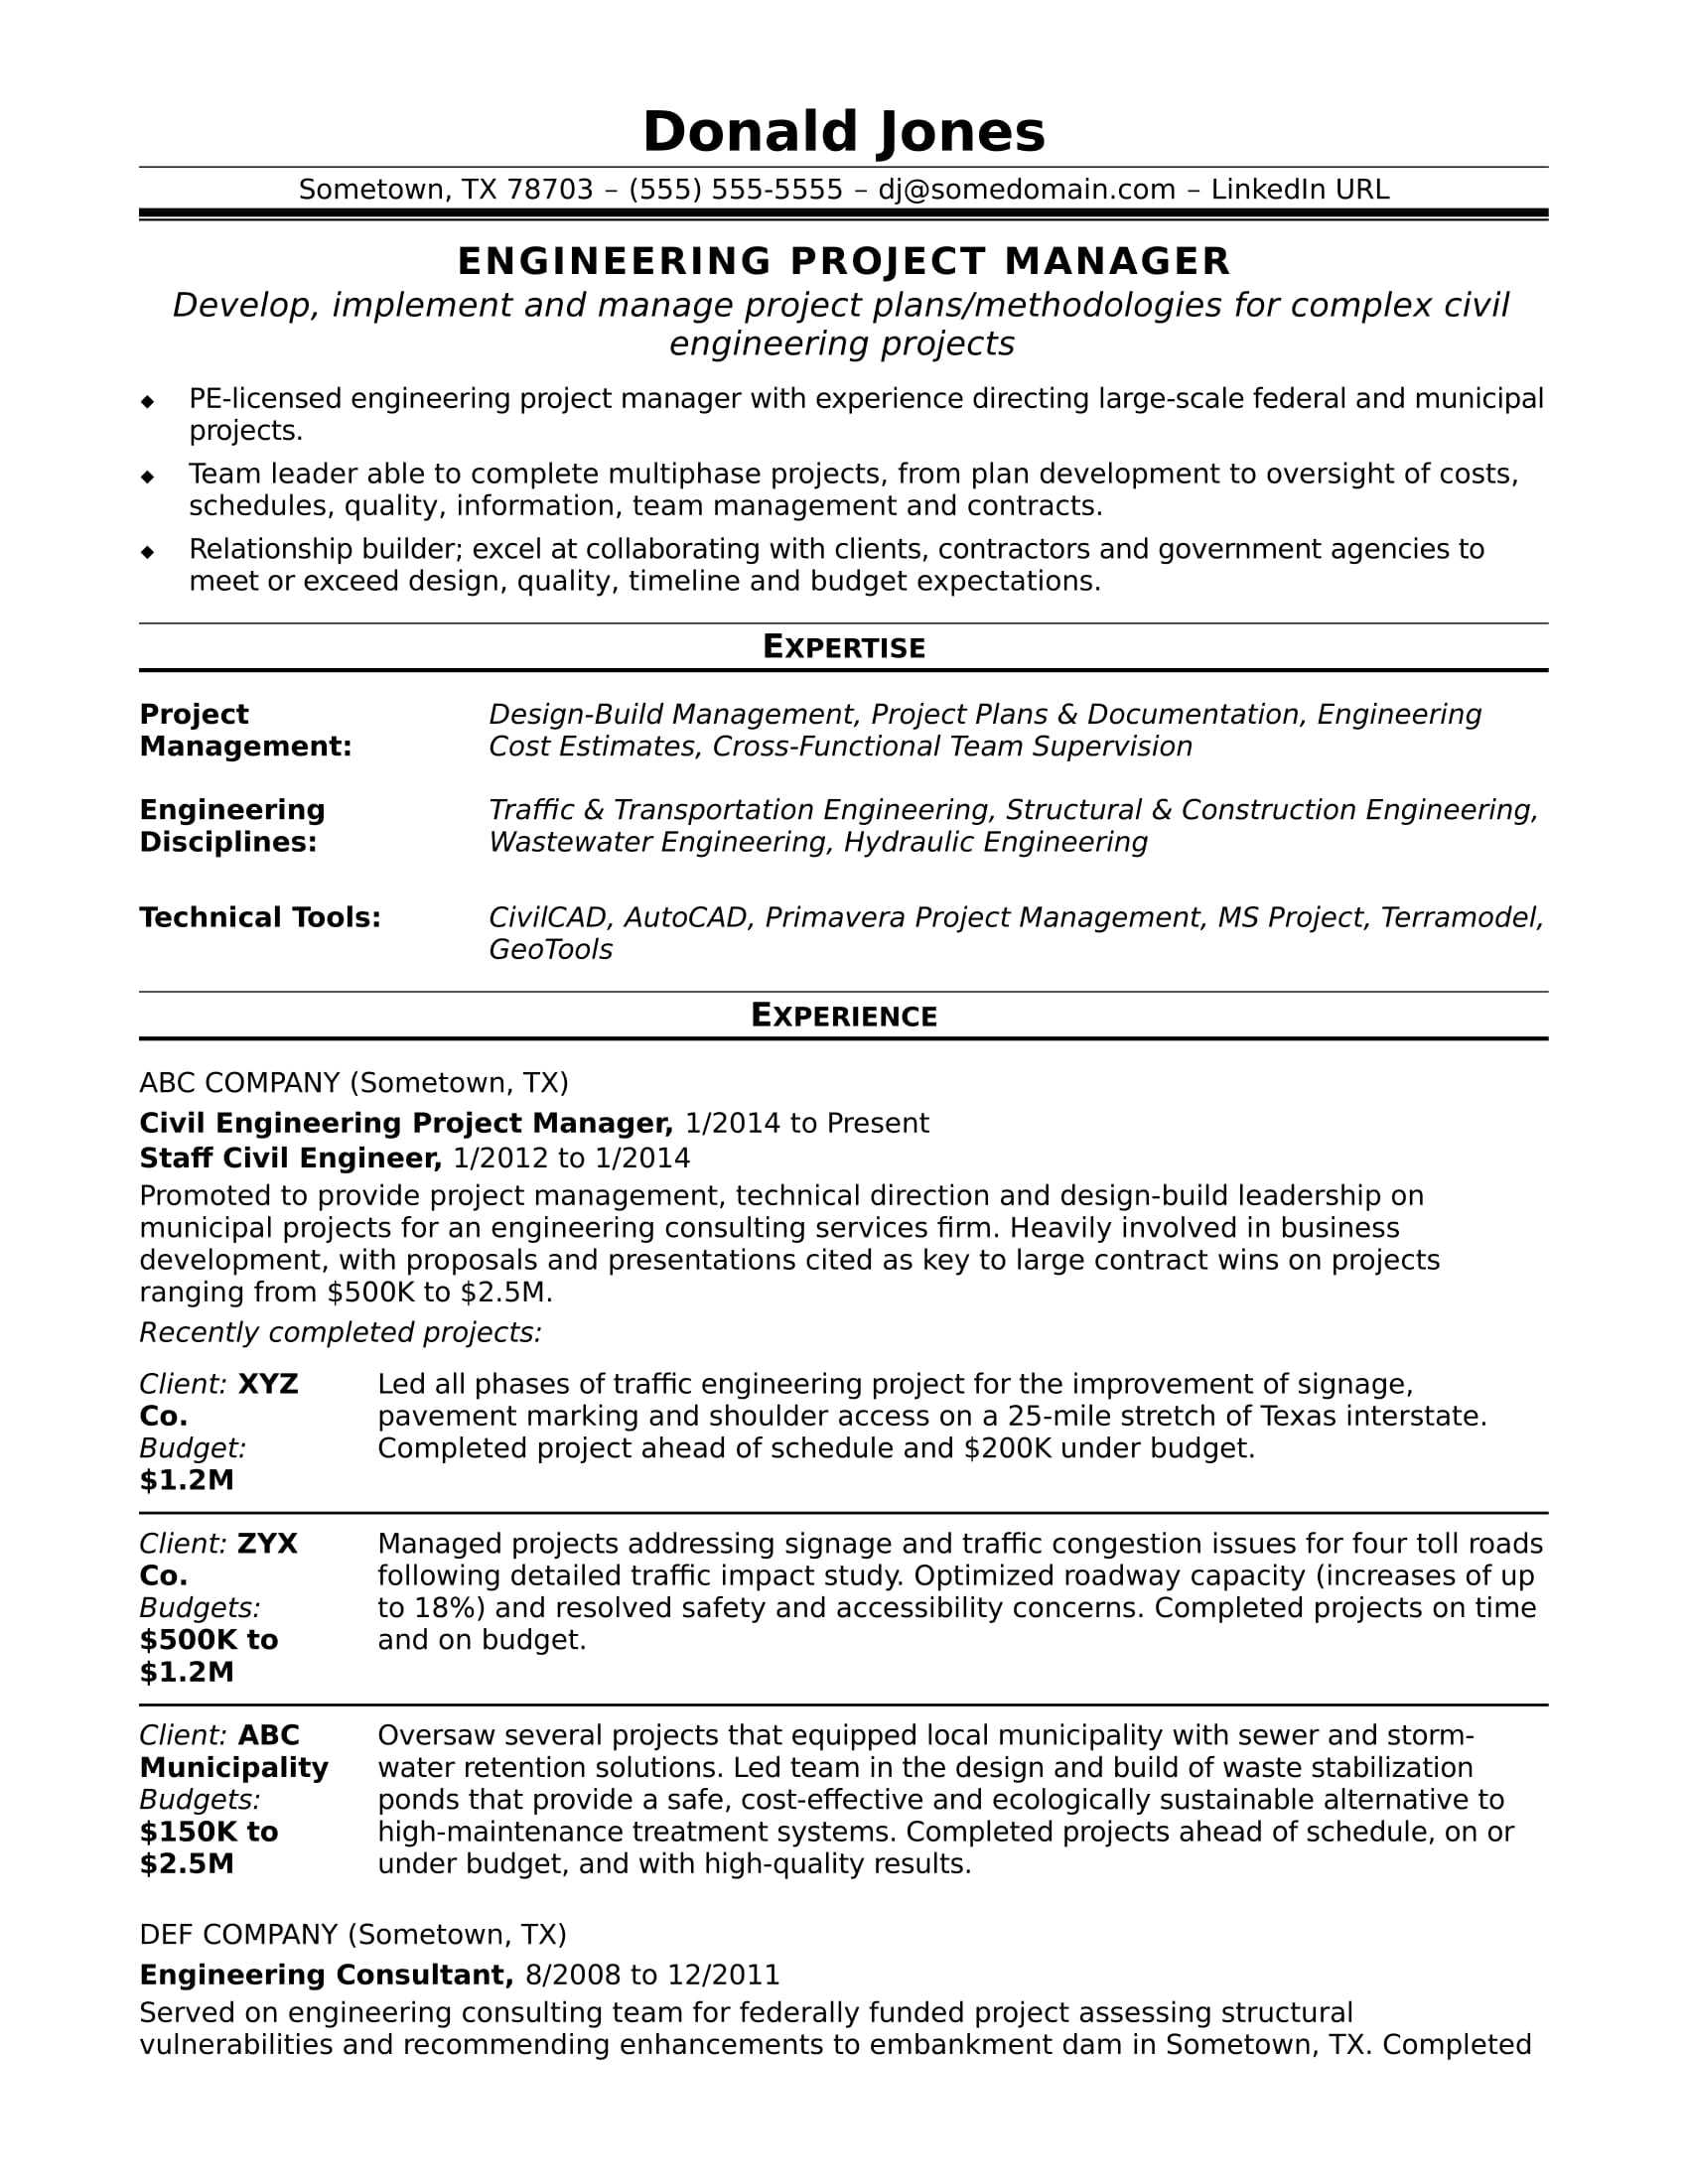 sample resume for a midlevel engineering project manager - Sample Project Manager Resumes